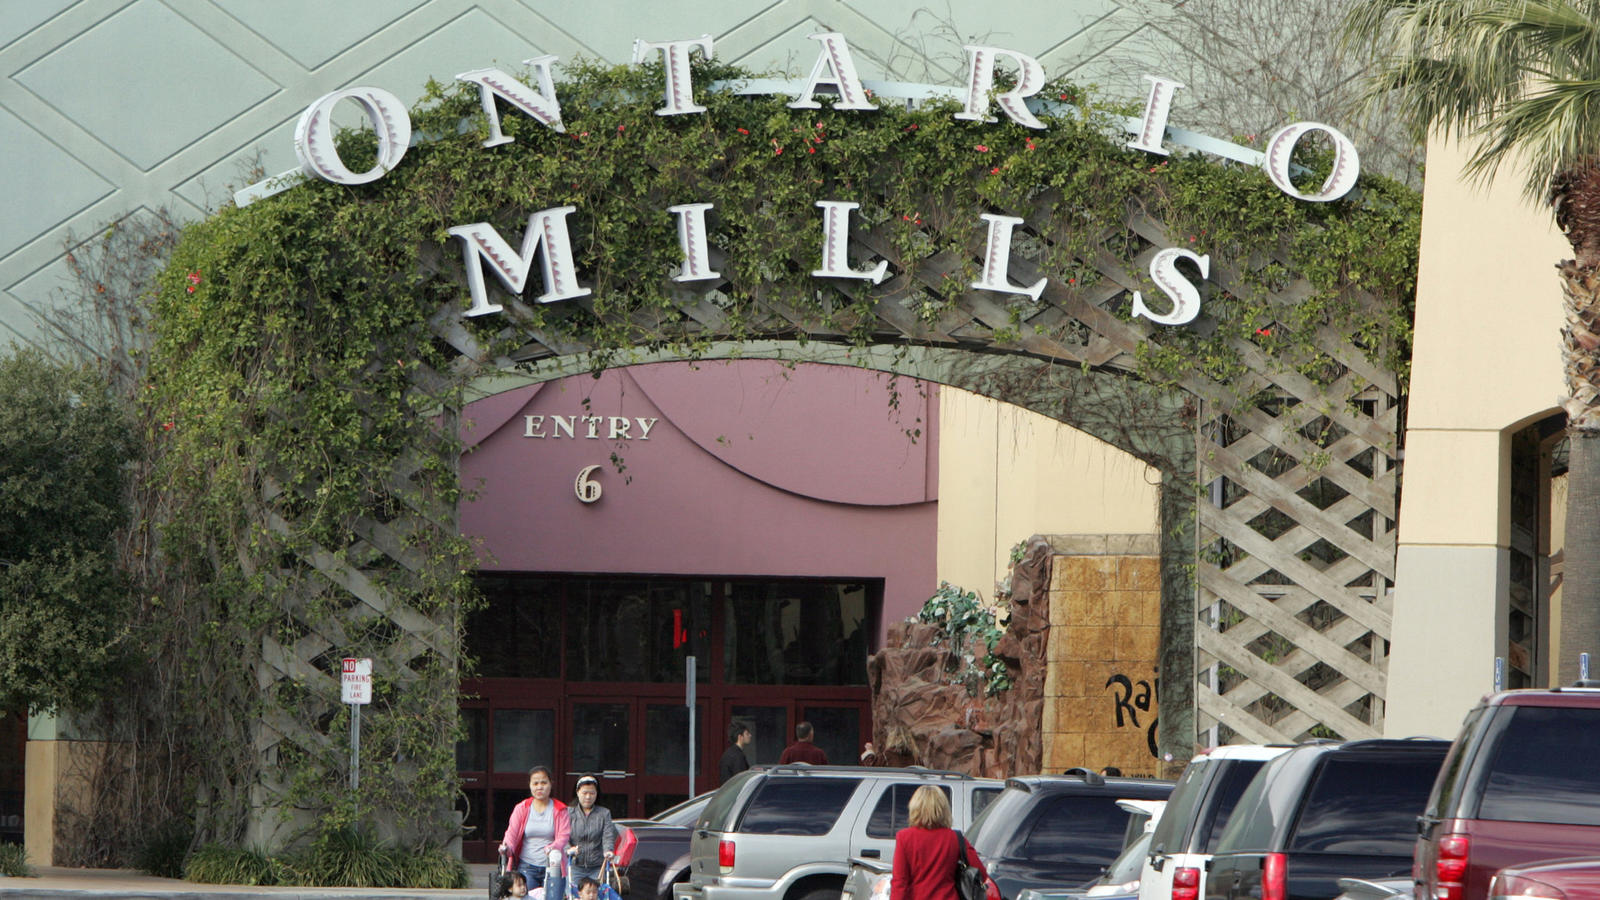 A commercial property in San Bernardino County that could face higher property taxes under a proposed ballot measure (Glenn Koenig / Los Angeles Times)